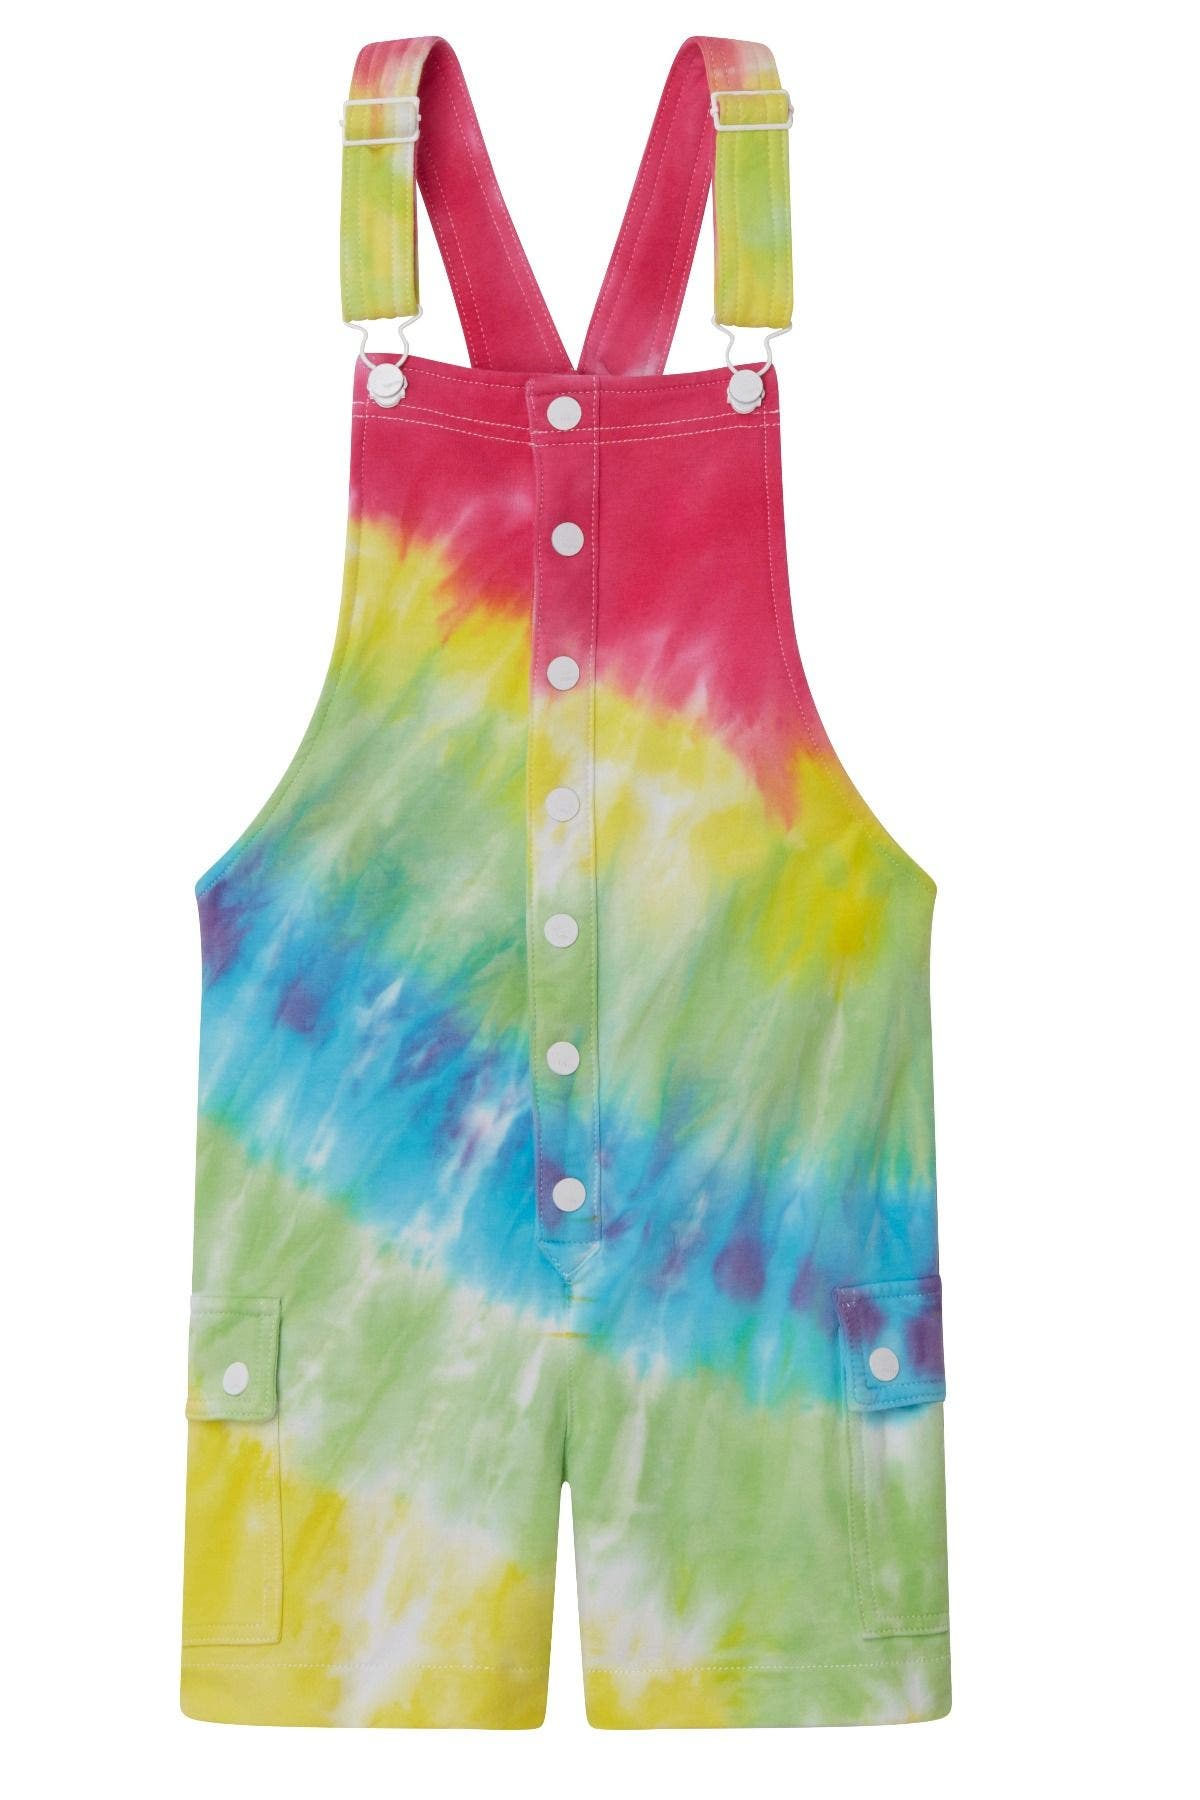 TIE DYE BUTTON UP FRONT KNIT SHORTALL